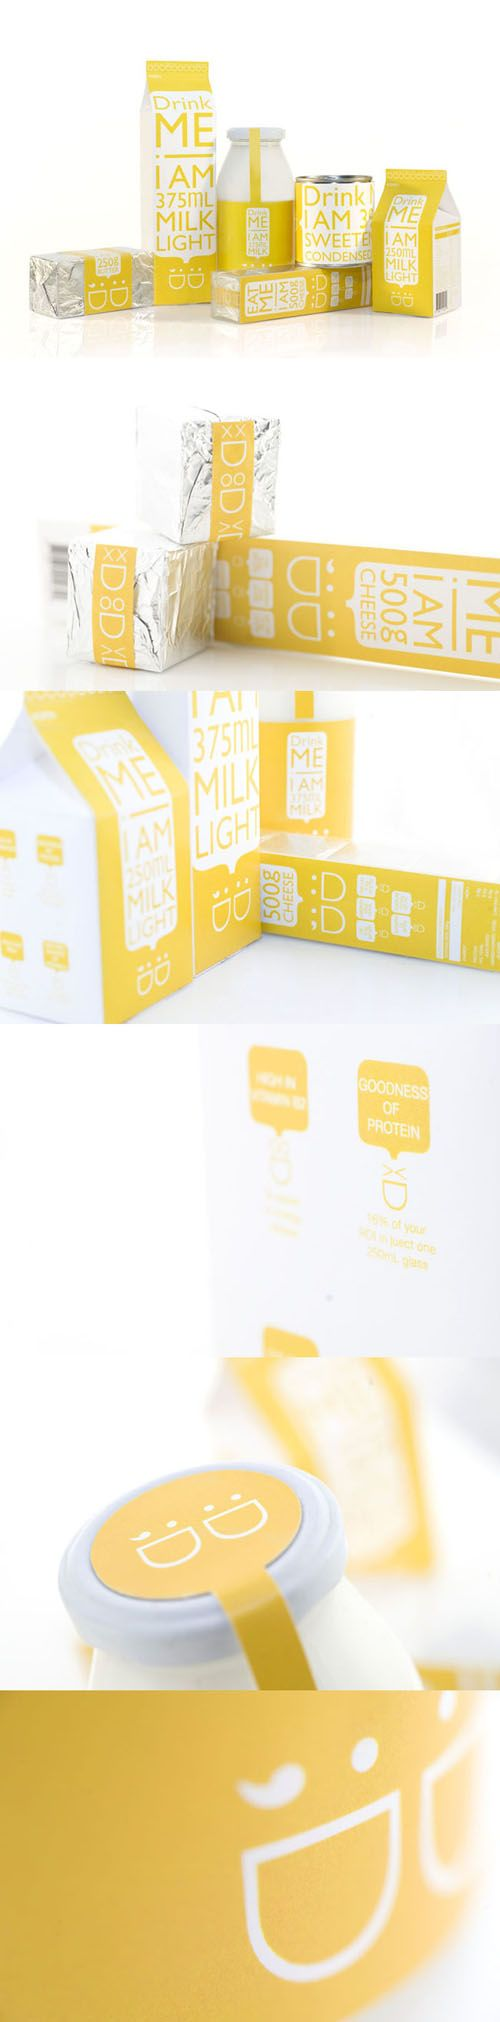 milk product packaging design